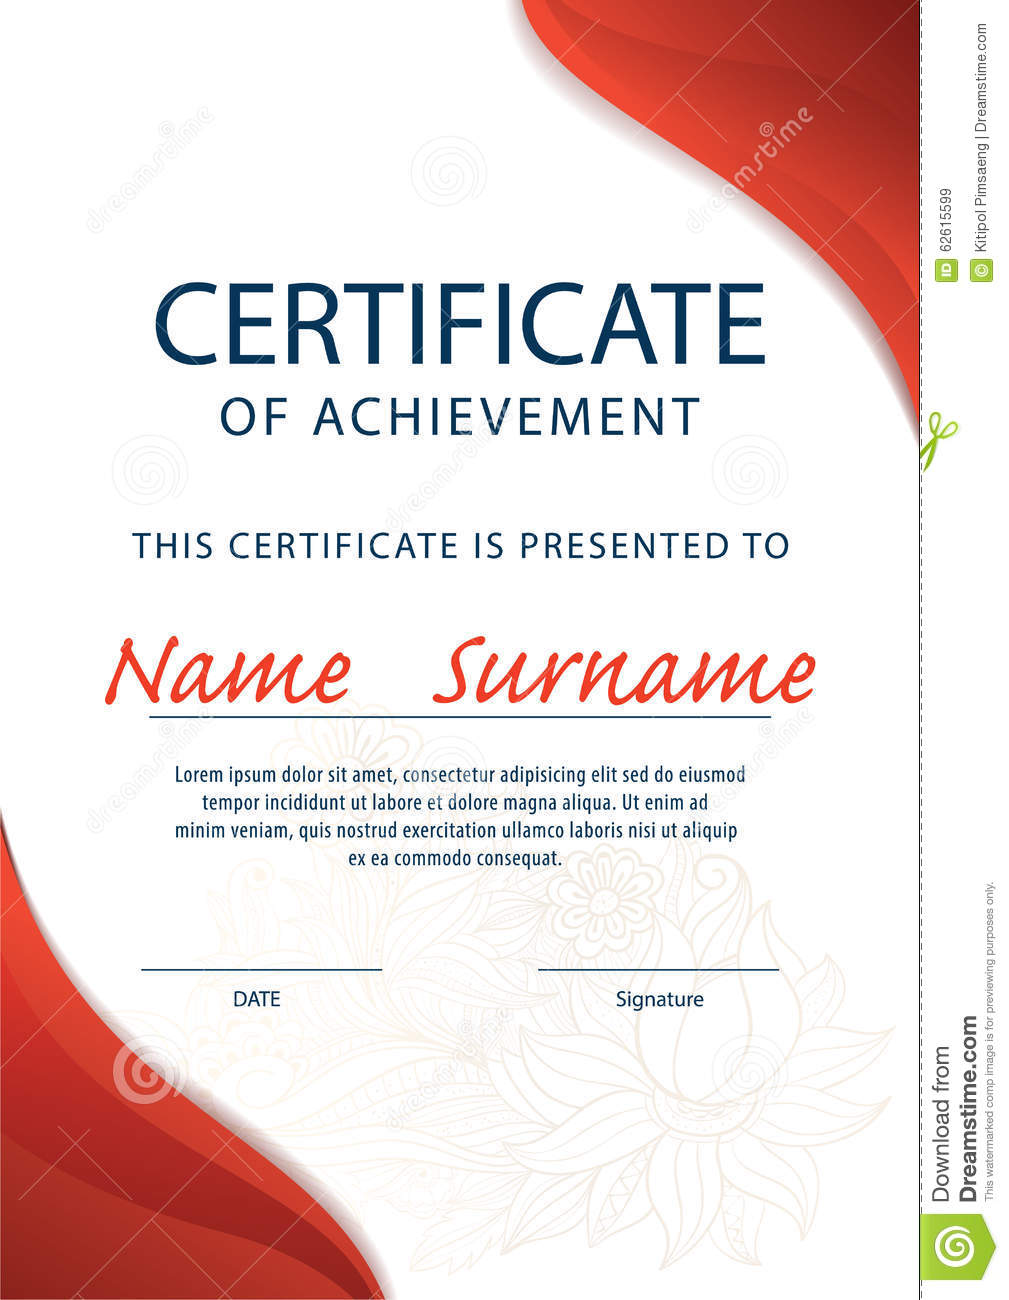 Certificate Templatediploma a4 Size vector Illustration – Certificate Layout